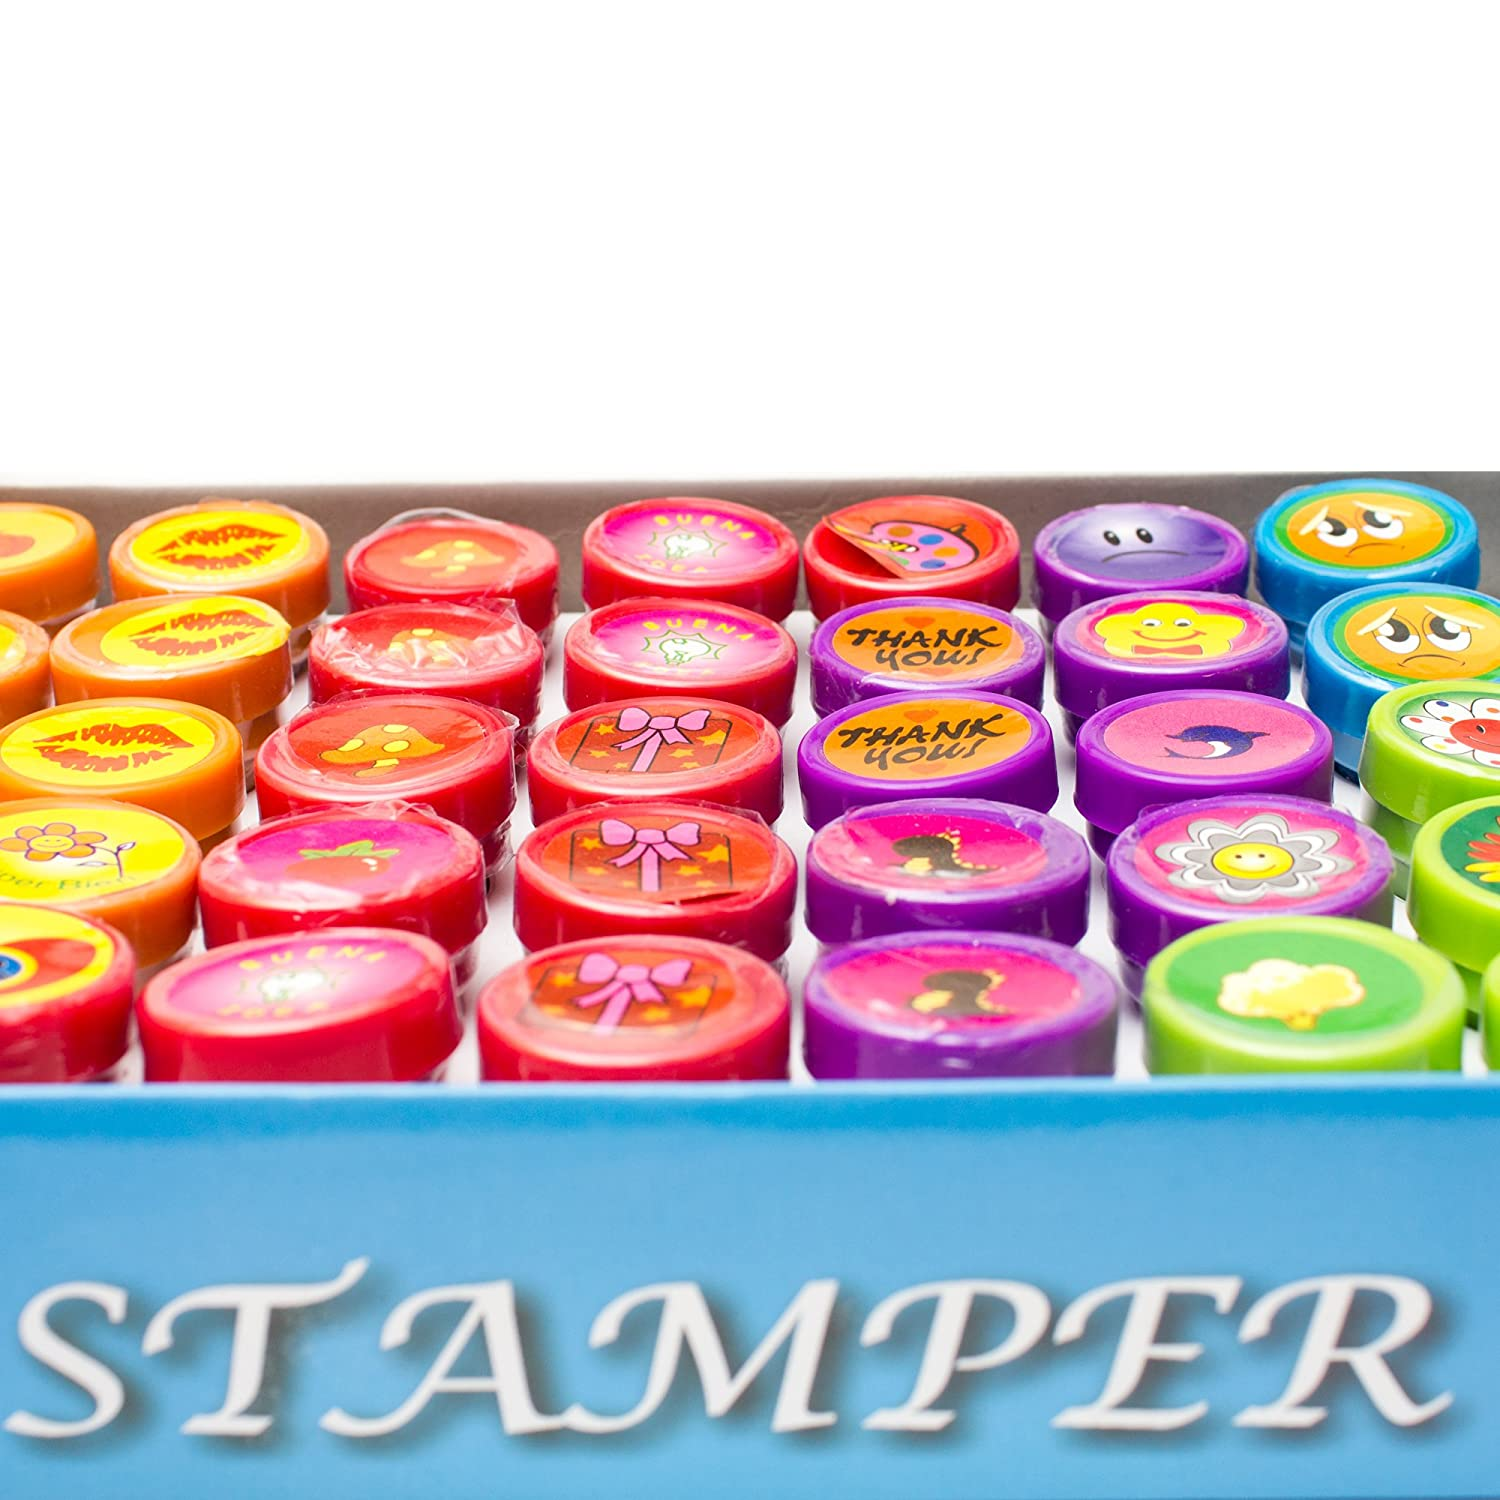 Stamp Sets for Kids for Party Favors Rubber Stamps for Kids Prizes Fun Central AU199 50pcs Assorted Stampers Rewards Gifts